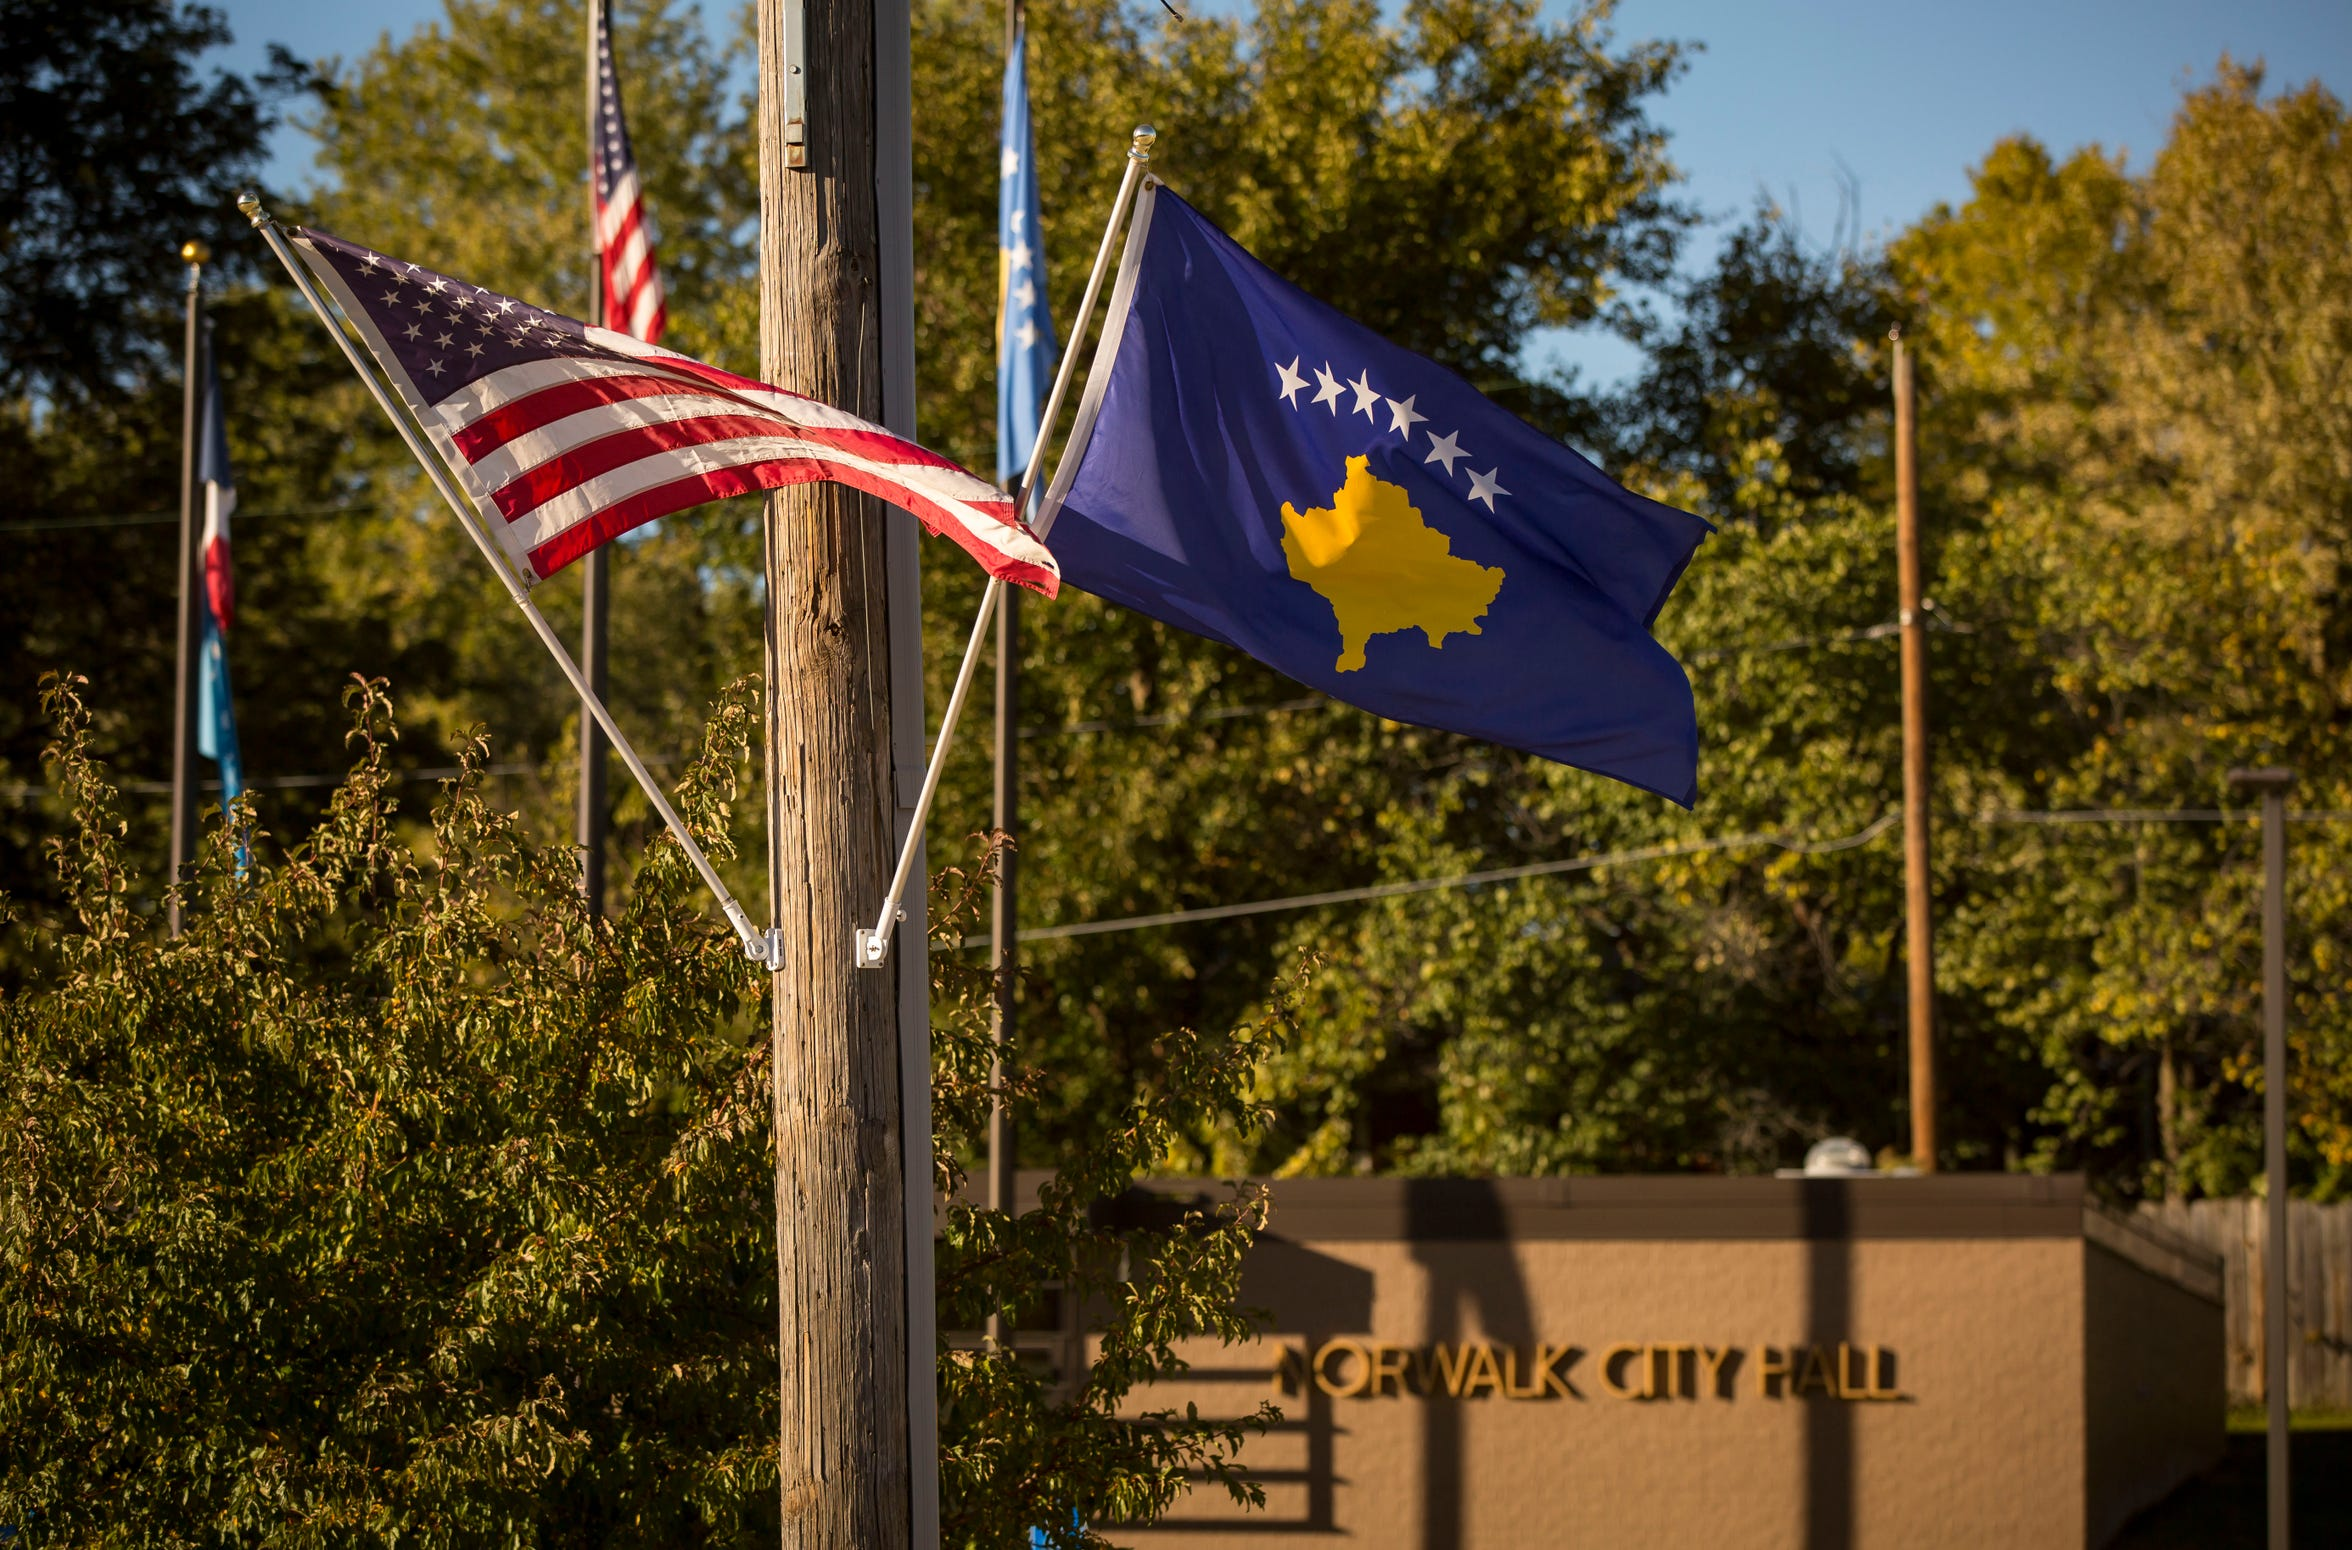 The flag of the Republic of Kosovo flies in front of  Norwalk City Hall Wednesday, Oct. 18, 2018. Norwalk became the sister city for Vustrri, Kosovo, in 2018.